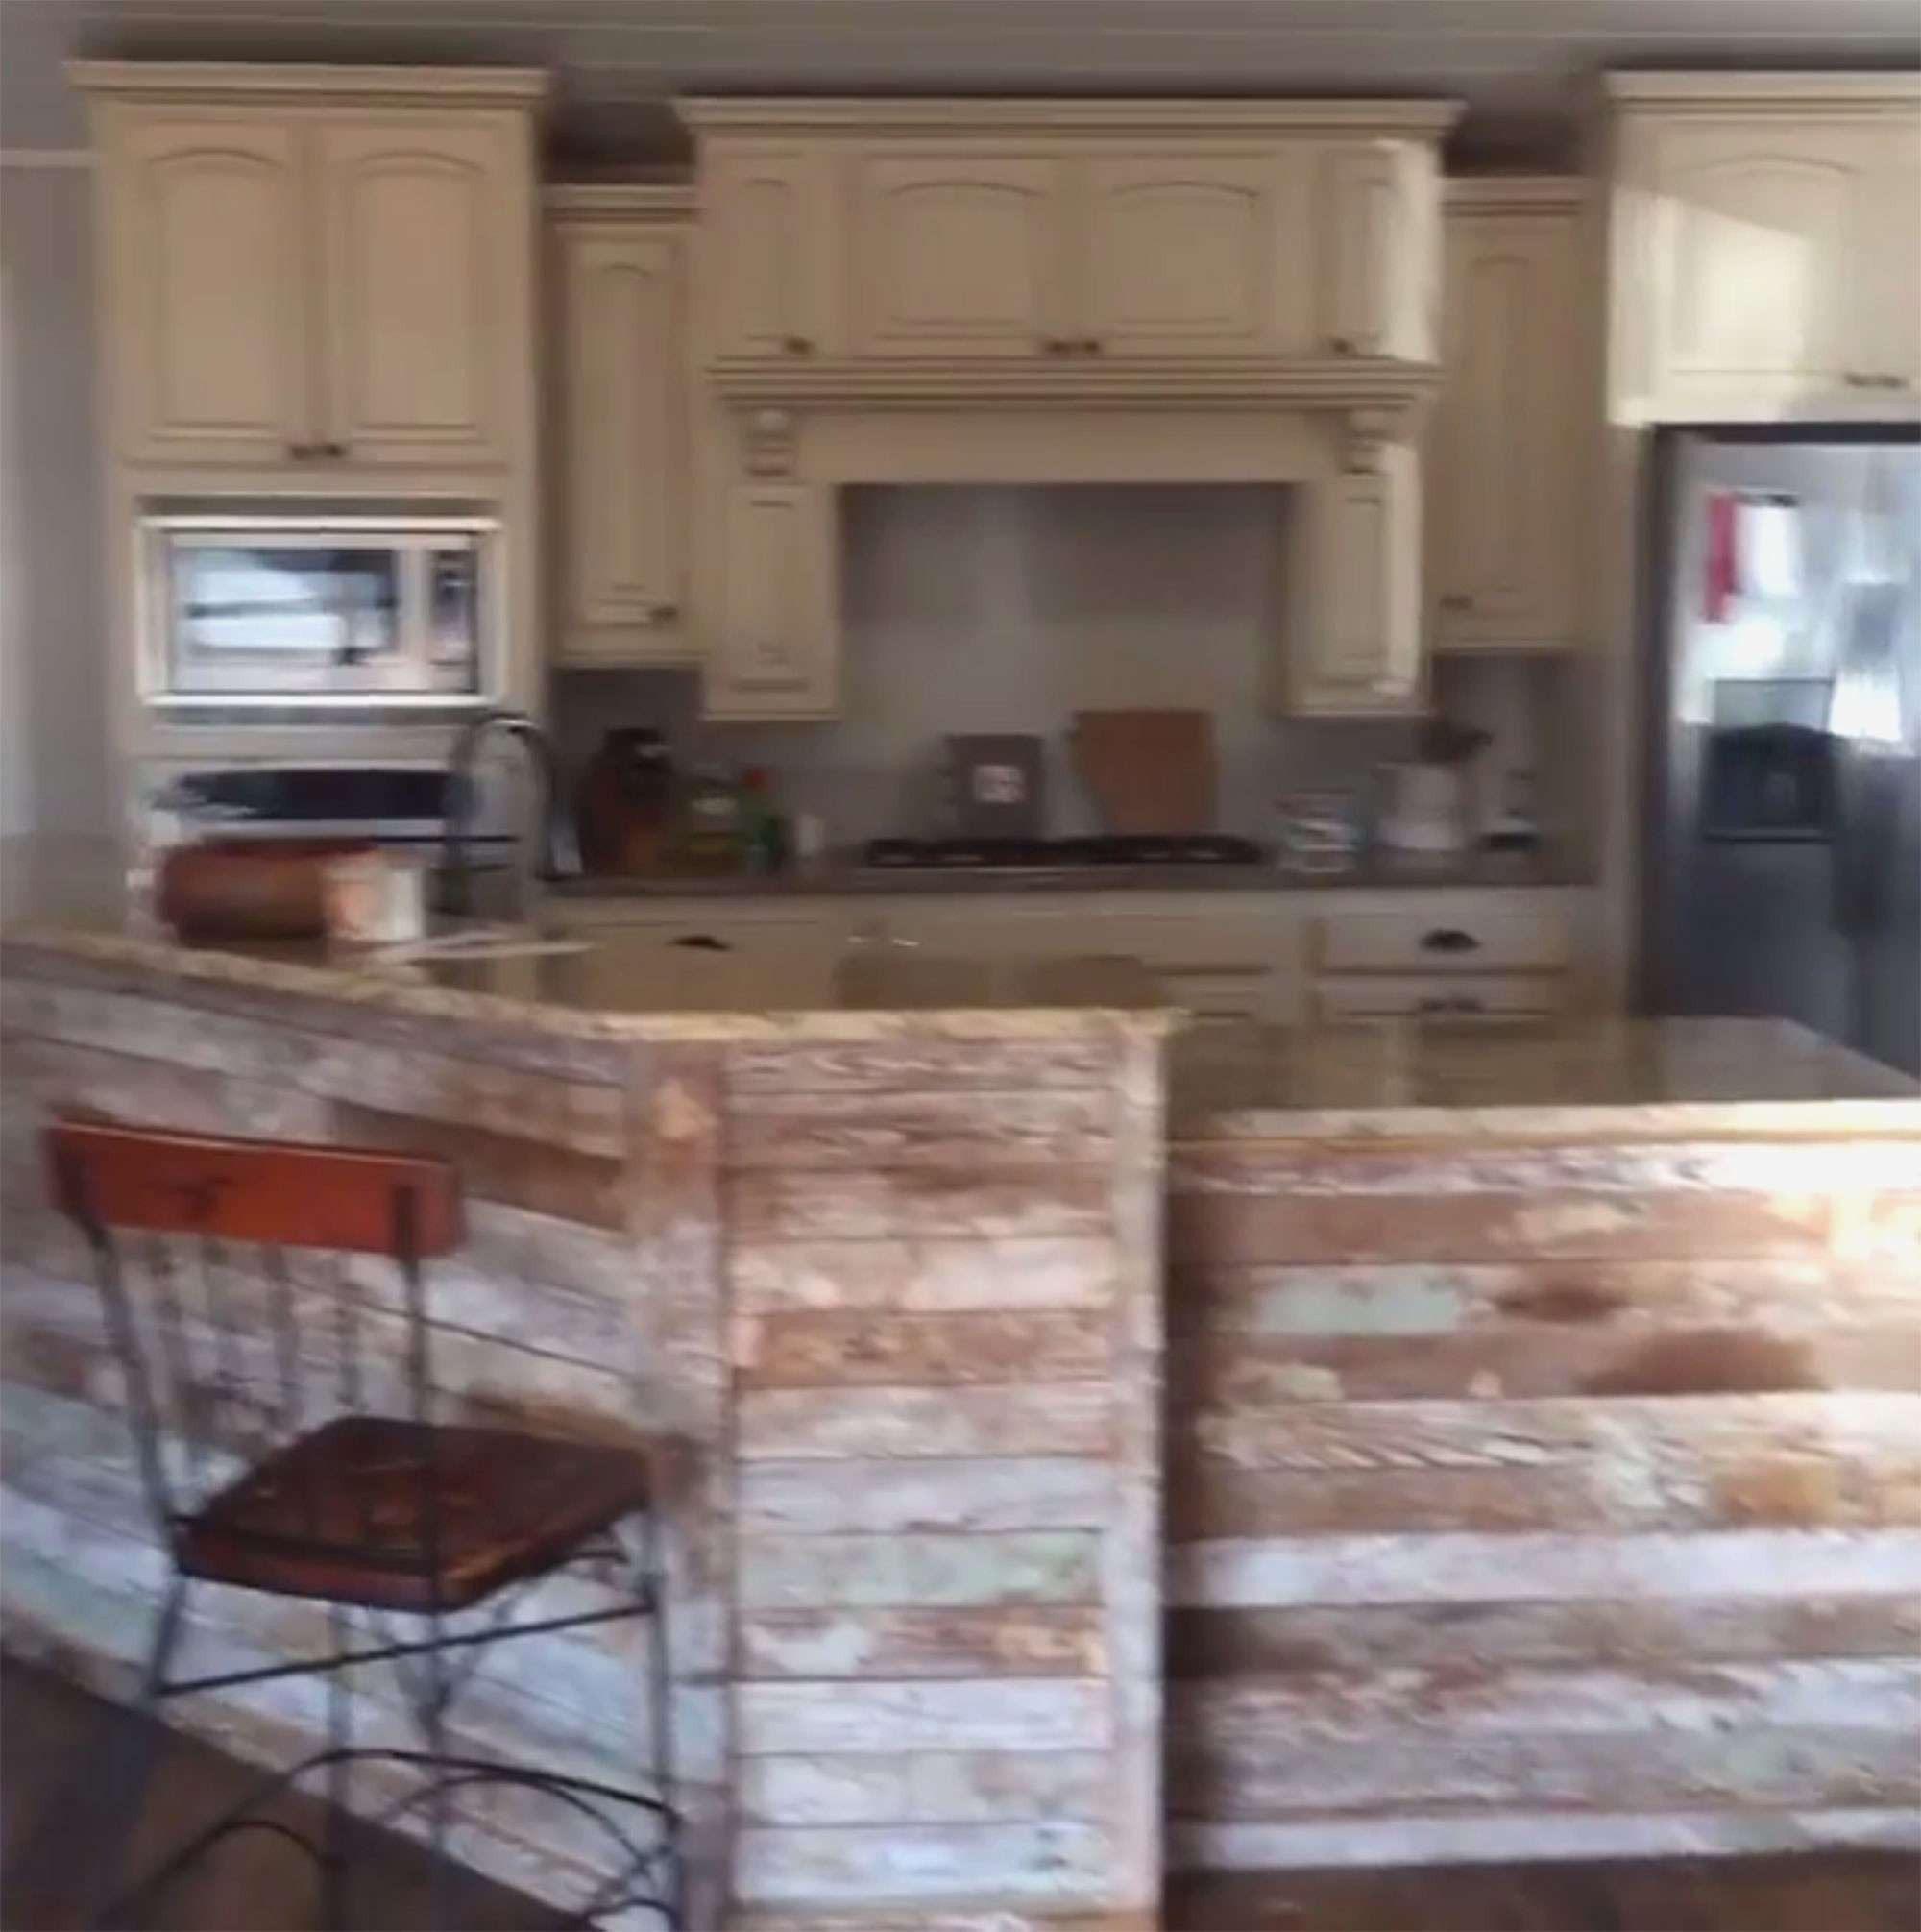 laminate hardwood flooring pros and cons of kitchen hardwood floors vs tile unique the pros and cons of laminate inside kitchen hardwood floors vs tile fresh kitchens new kitchen kitchens unlimited kitchens unlimited 0d